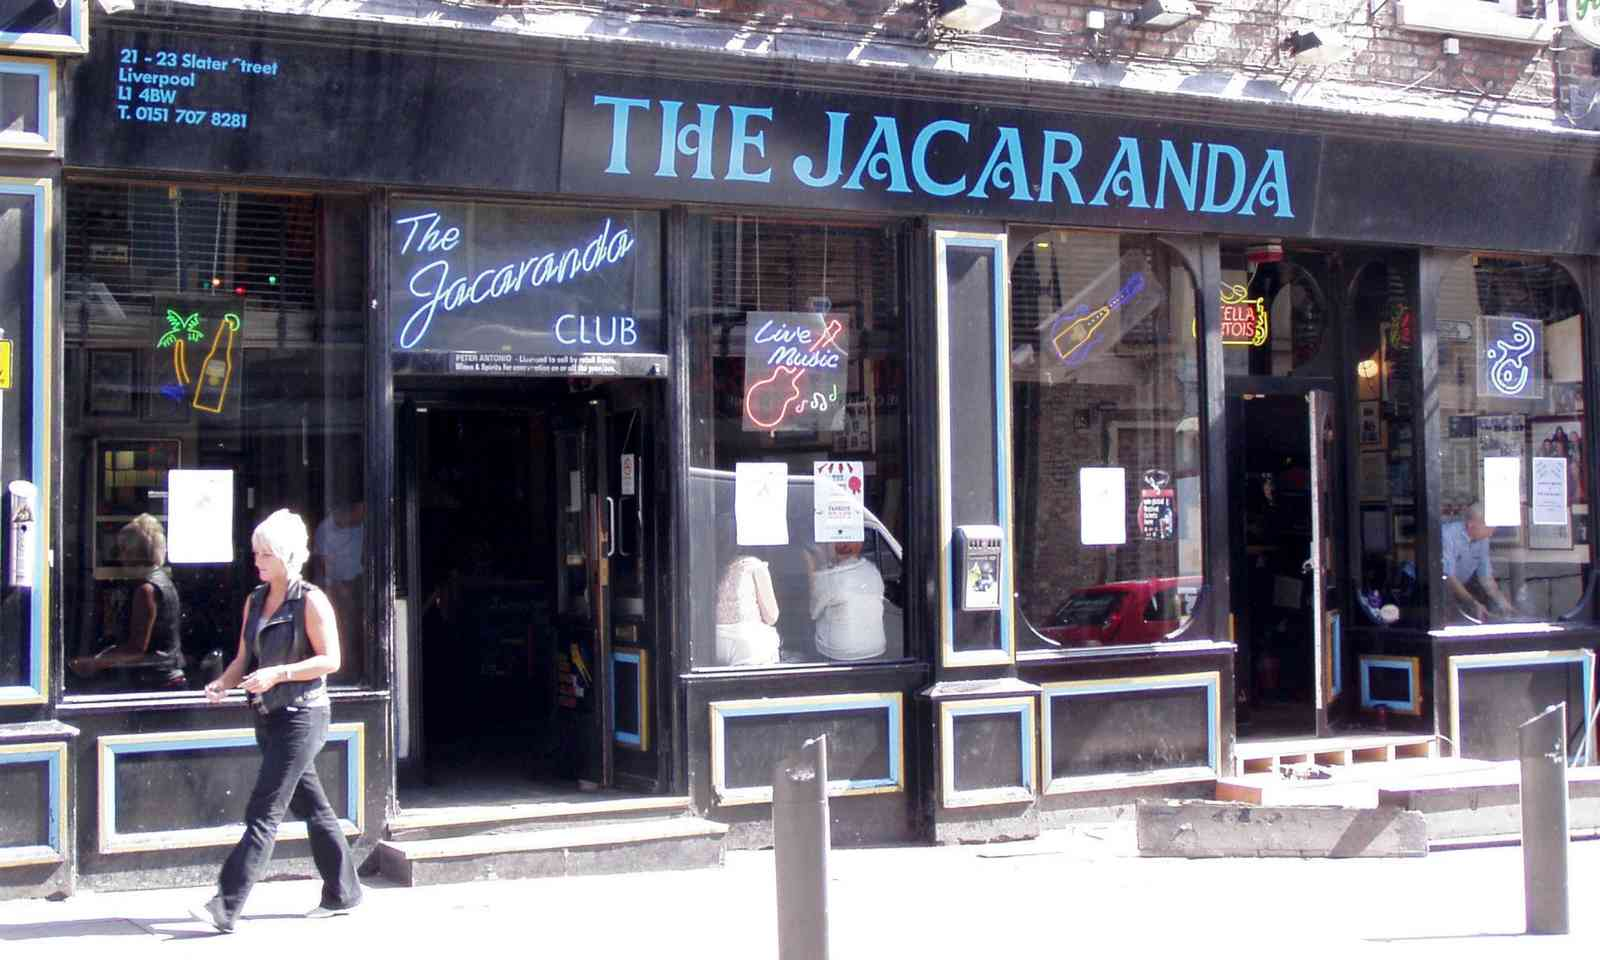 The Jacaranda Club (Creative Commons: John Bradley)